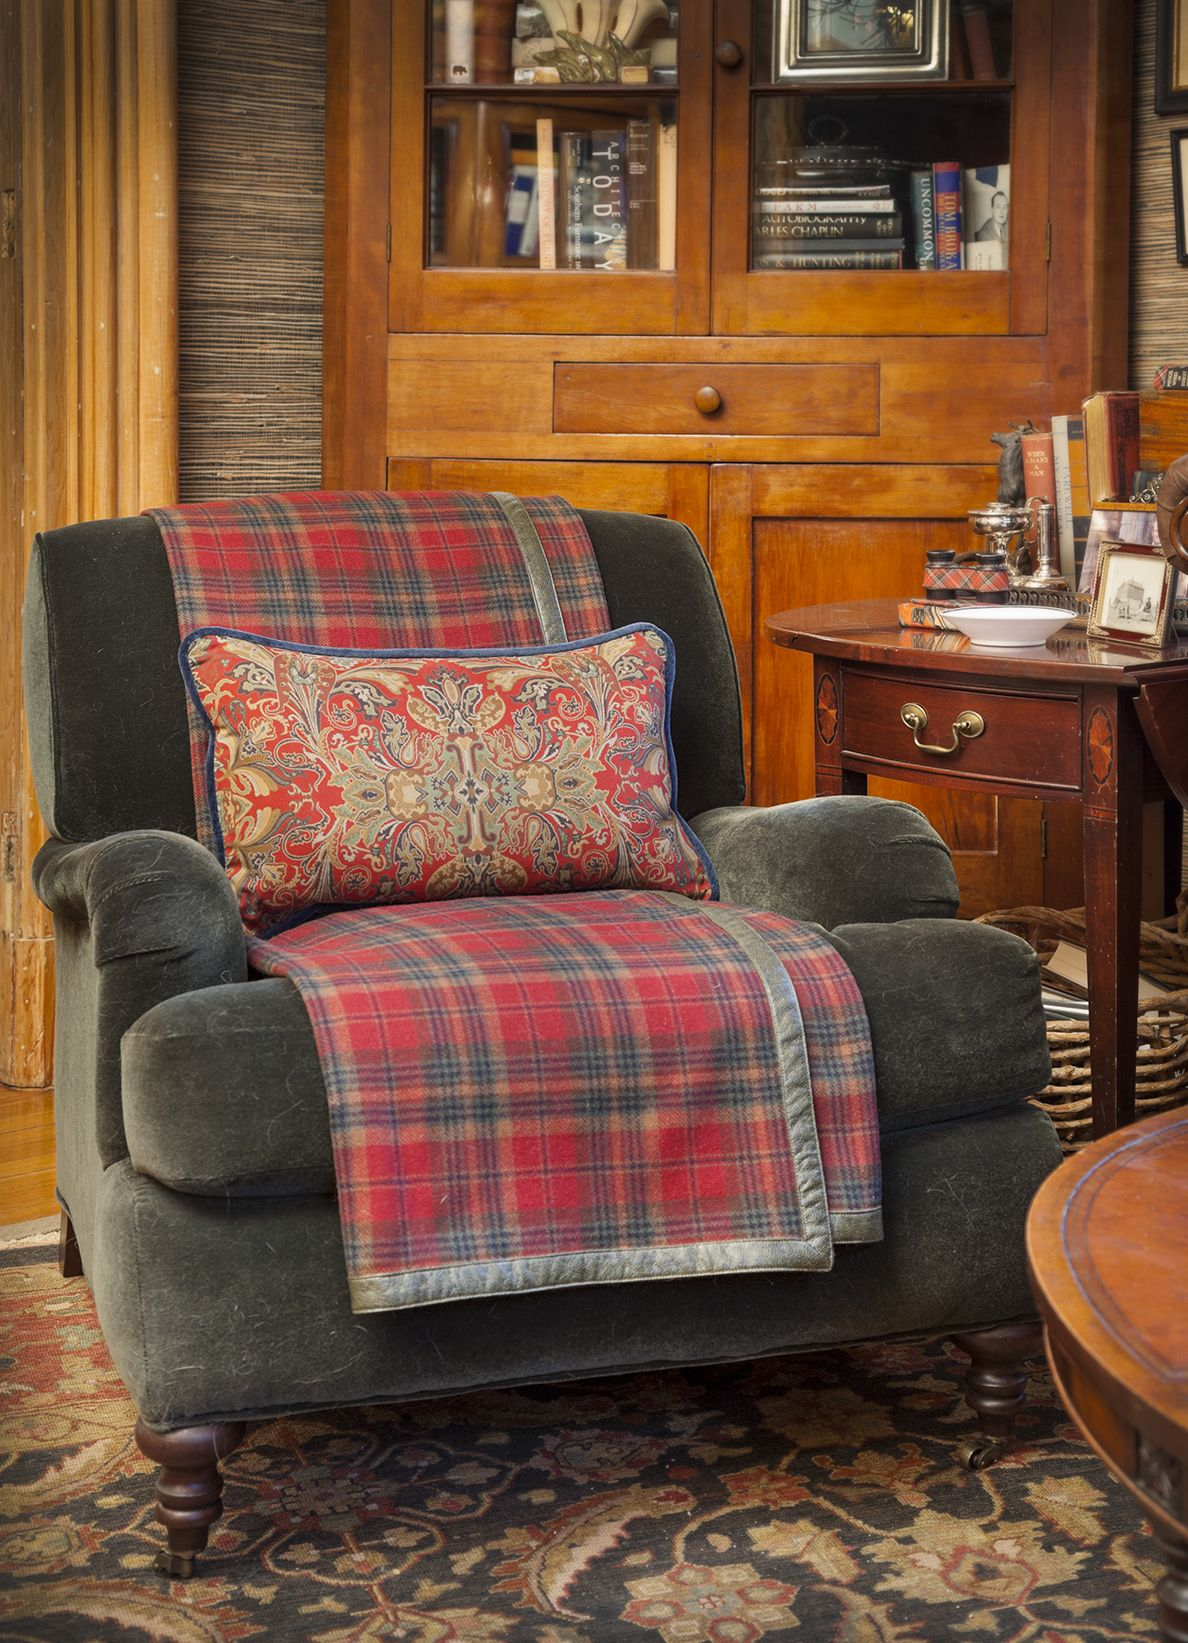 Plaids Pour Fauteuils Mad About Plaid Scotch Plaid Tartan Lifestyle